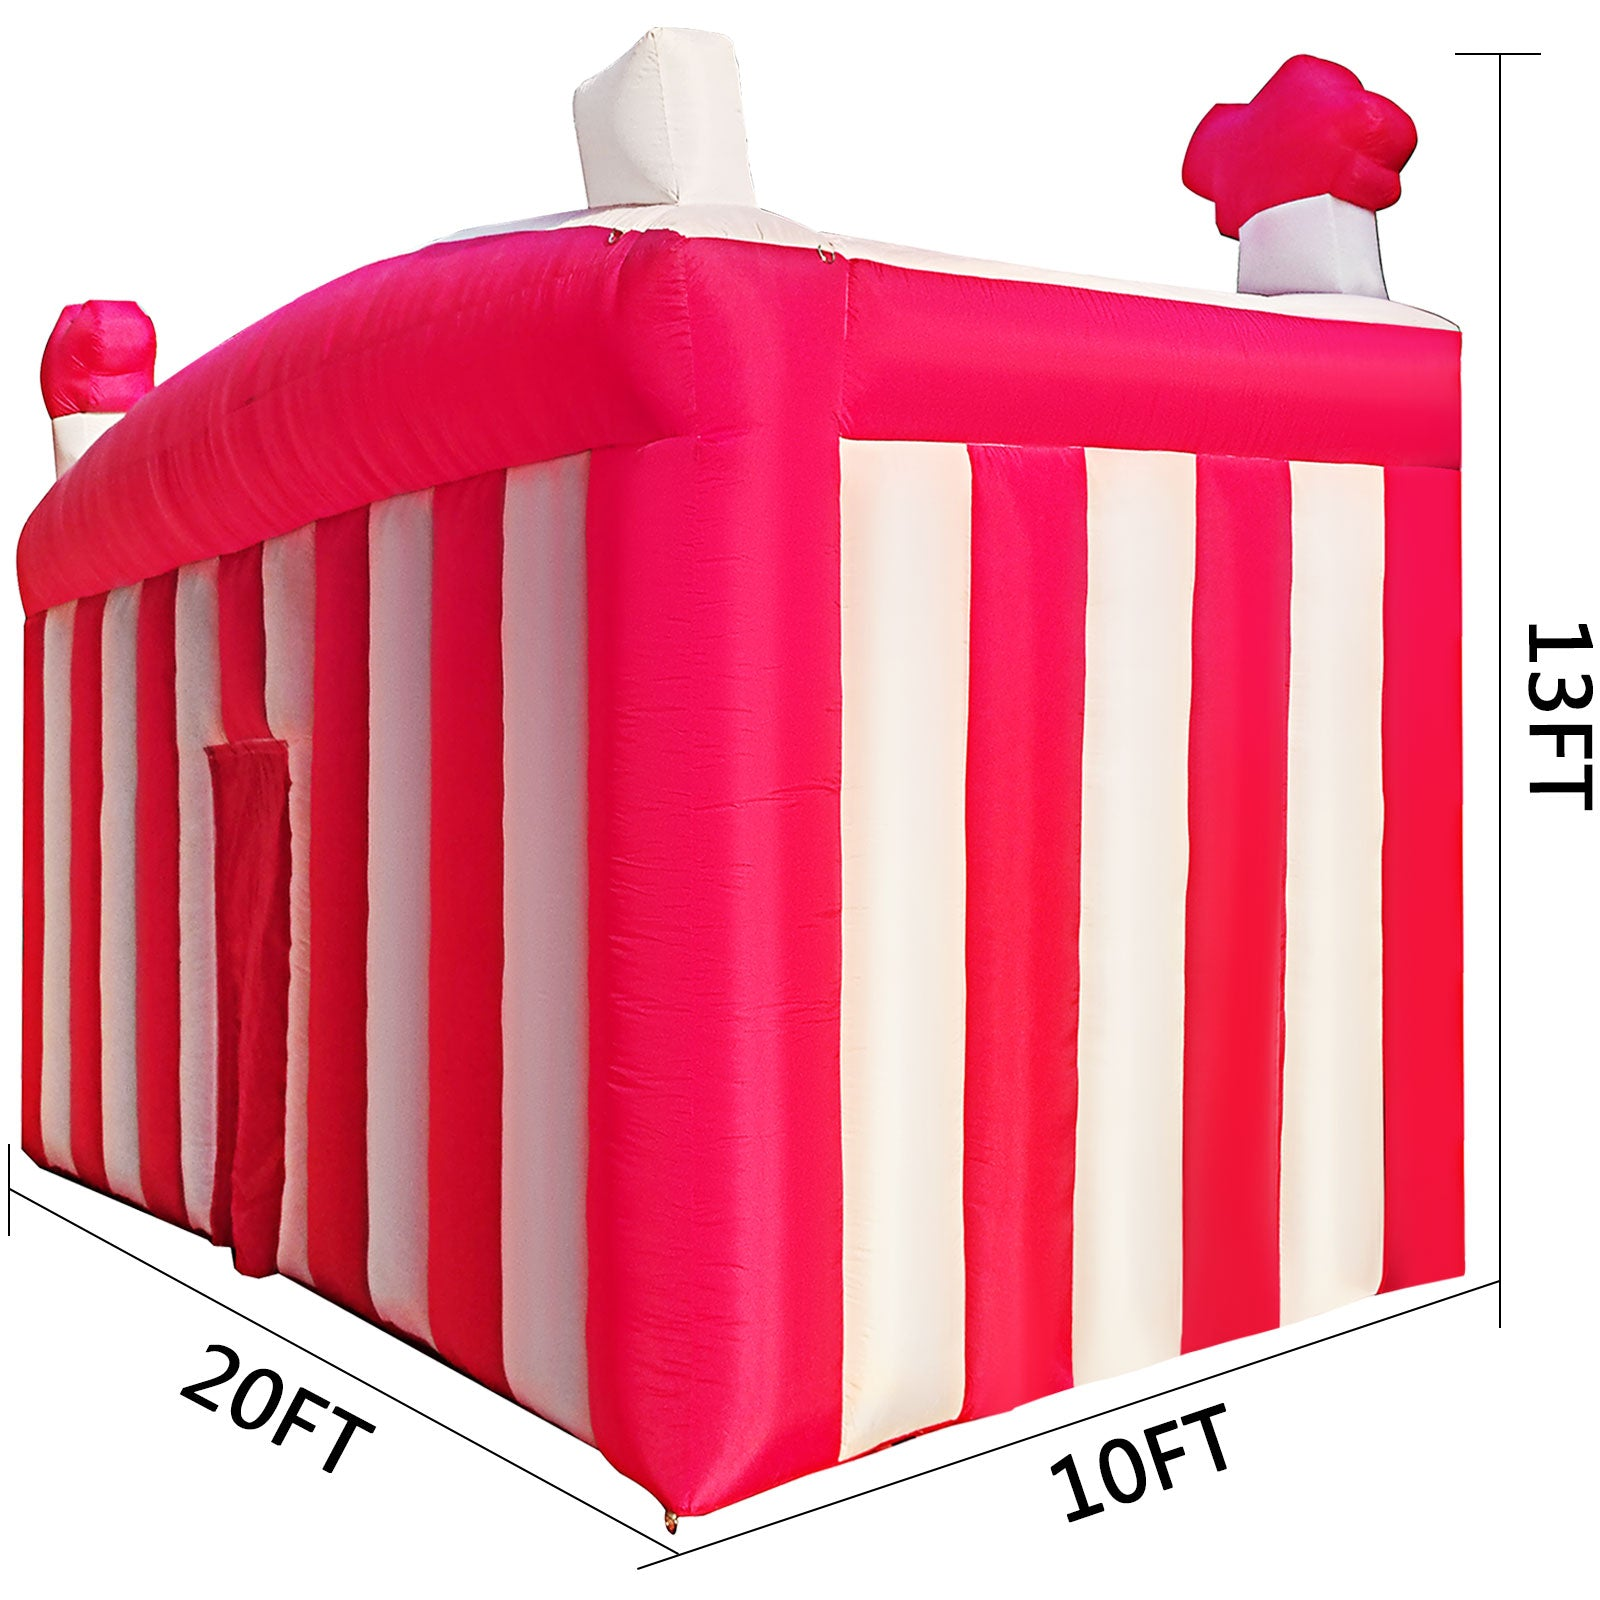 20x10x13ft Outdoor Inflatable Pub House Bar Vip Tent Party Event With Air Blower